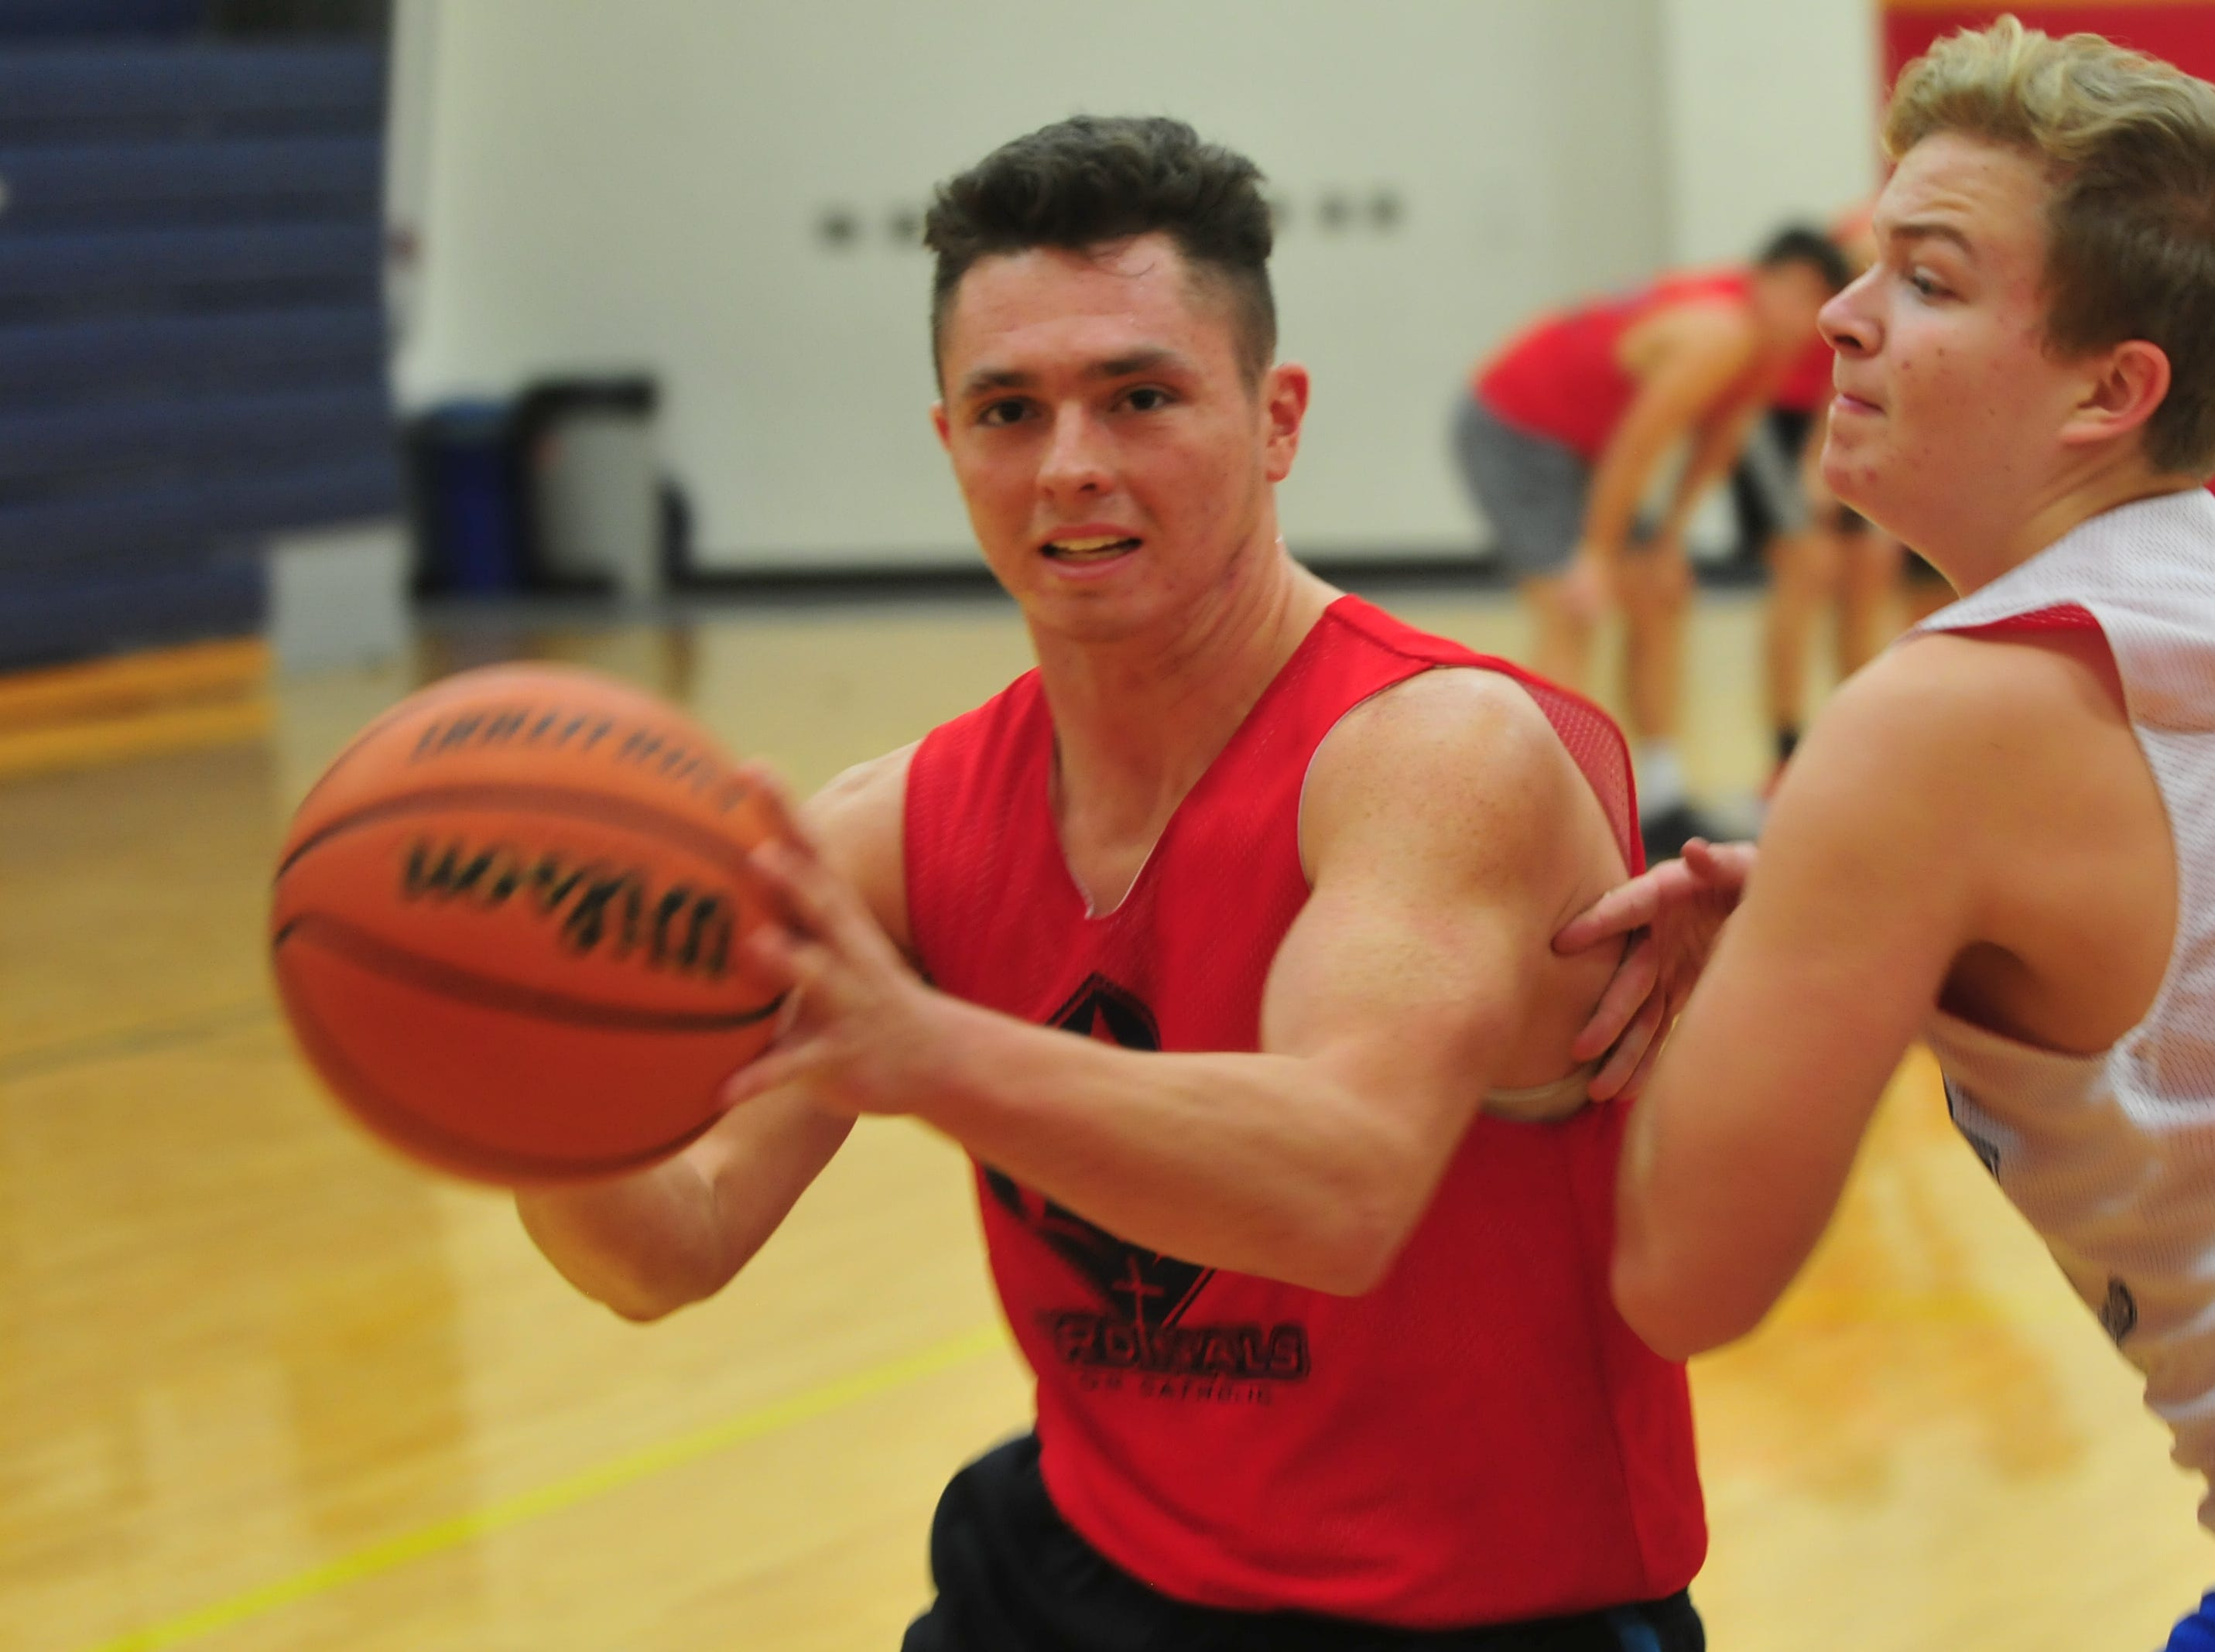 Seton Catholic boys basketball senior Trent Reichley moves to the basket during practice Wednesday, Nov. 28, 2018.